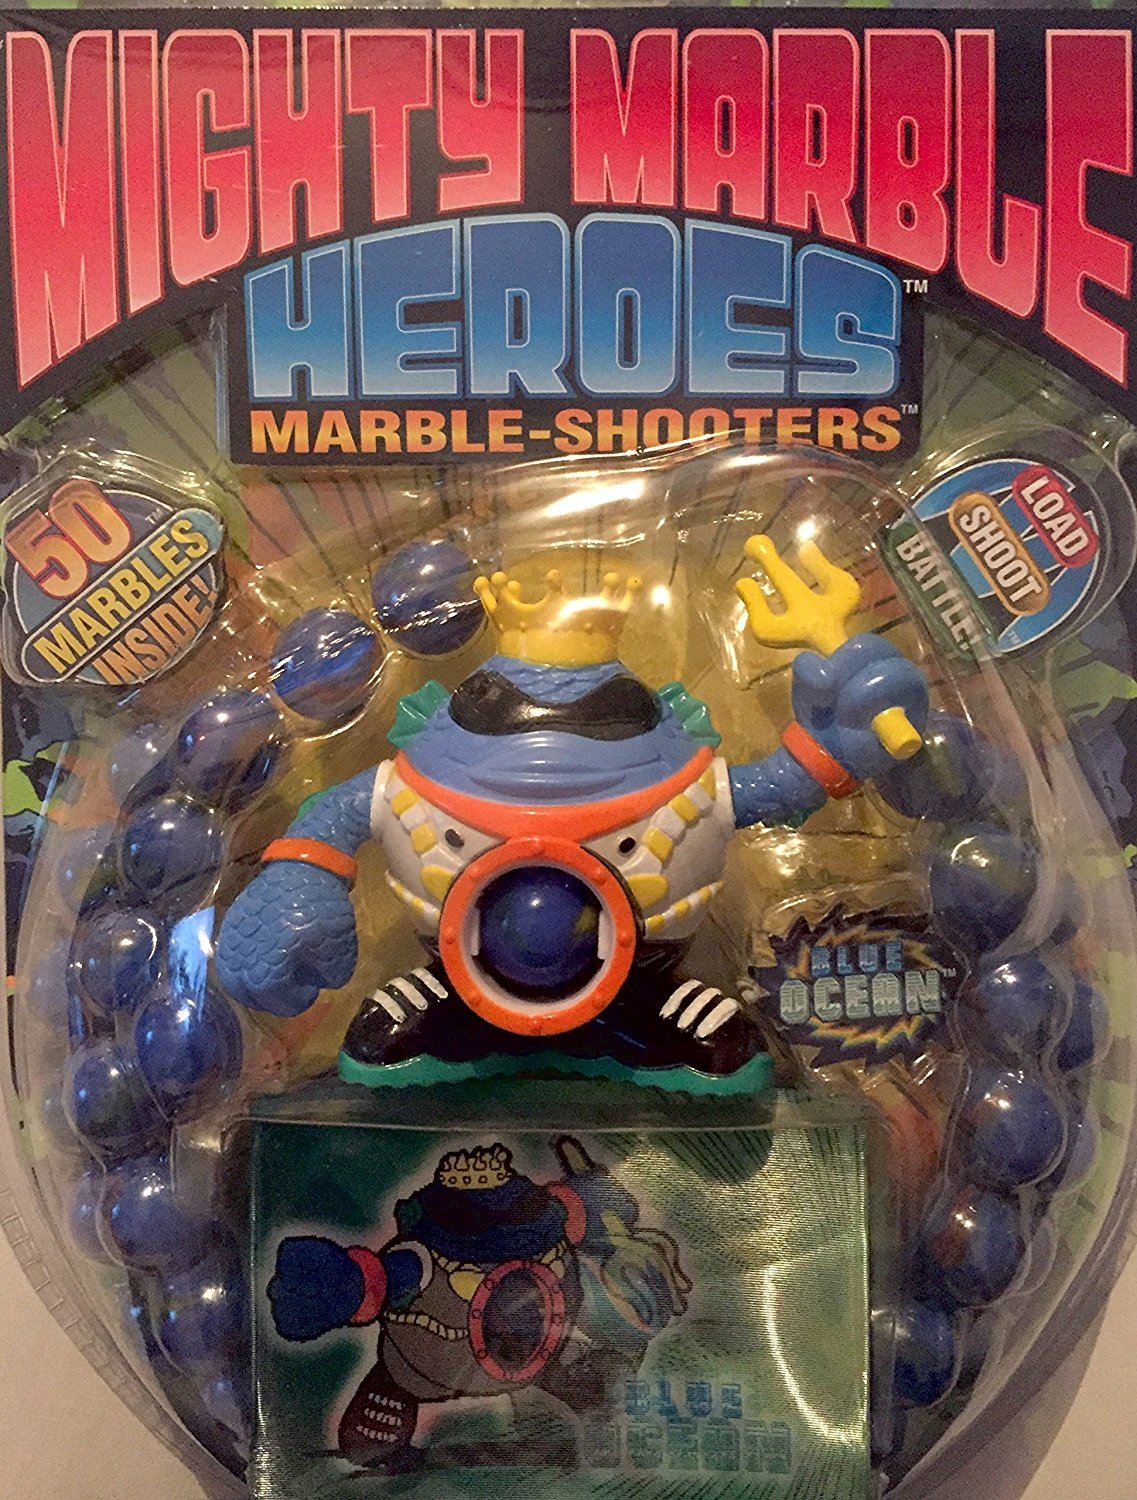 Imperial Toy Mighty Marble Heroes Set #12846 Blue Ocean Shooter w/ 50 Marbles